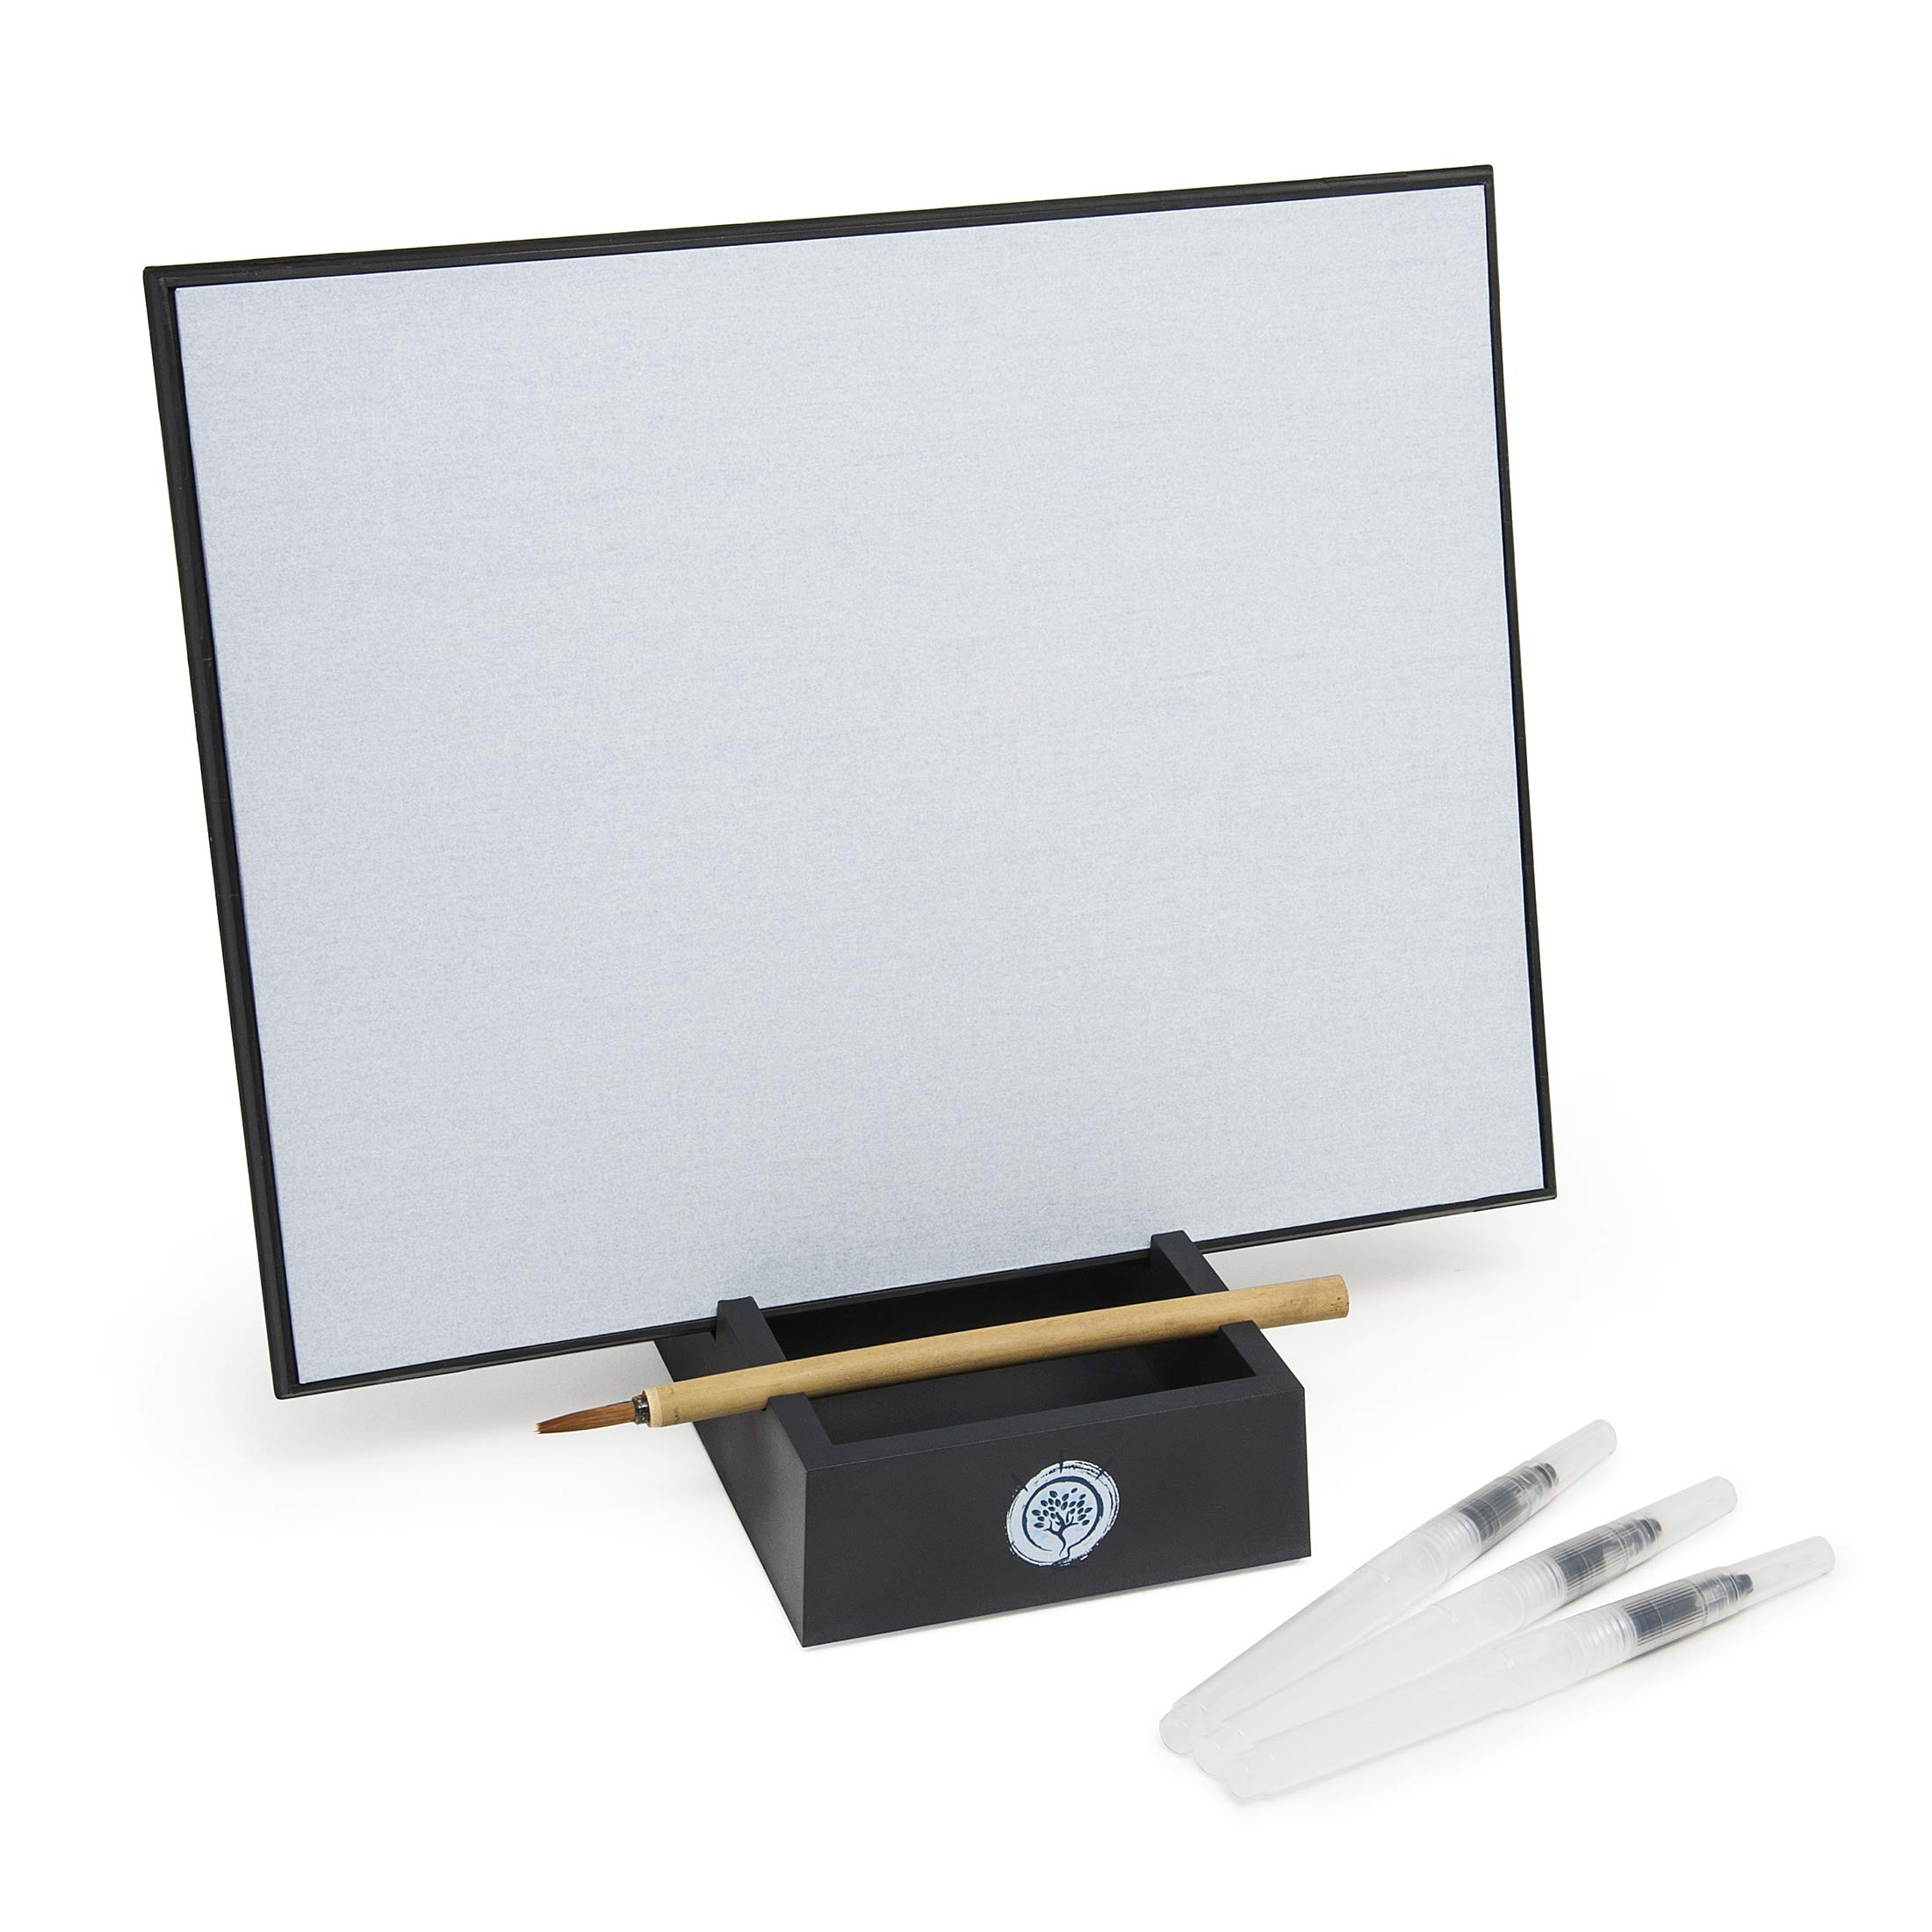 Zen Satori Board, Large - Paint with Water, Meditation & Mindfulness Practice, Great for Classrooms, Includes (3) Water Brushes by ClarkCo